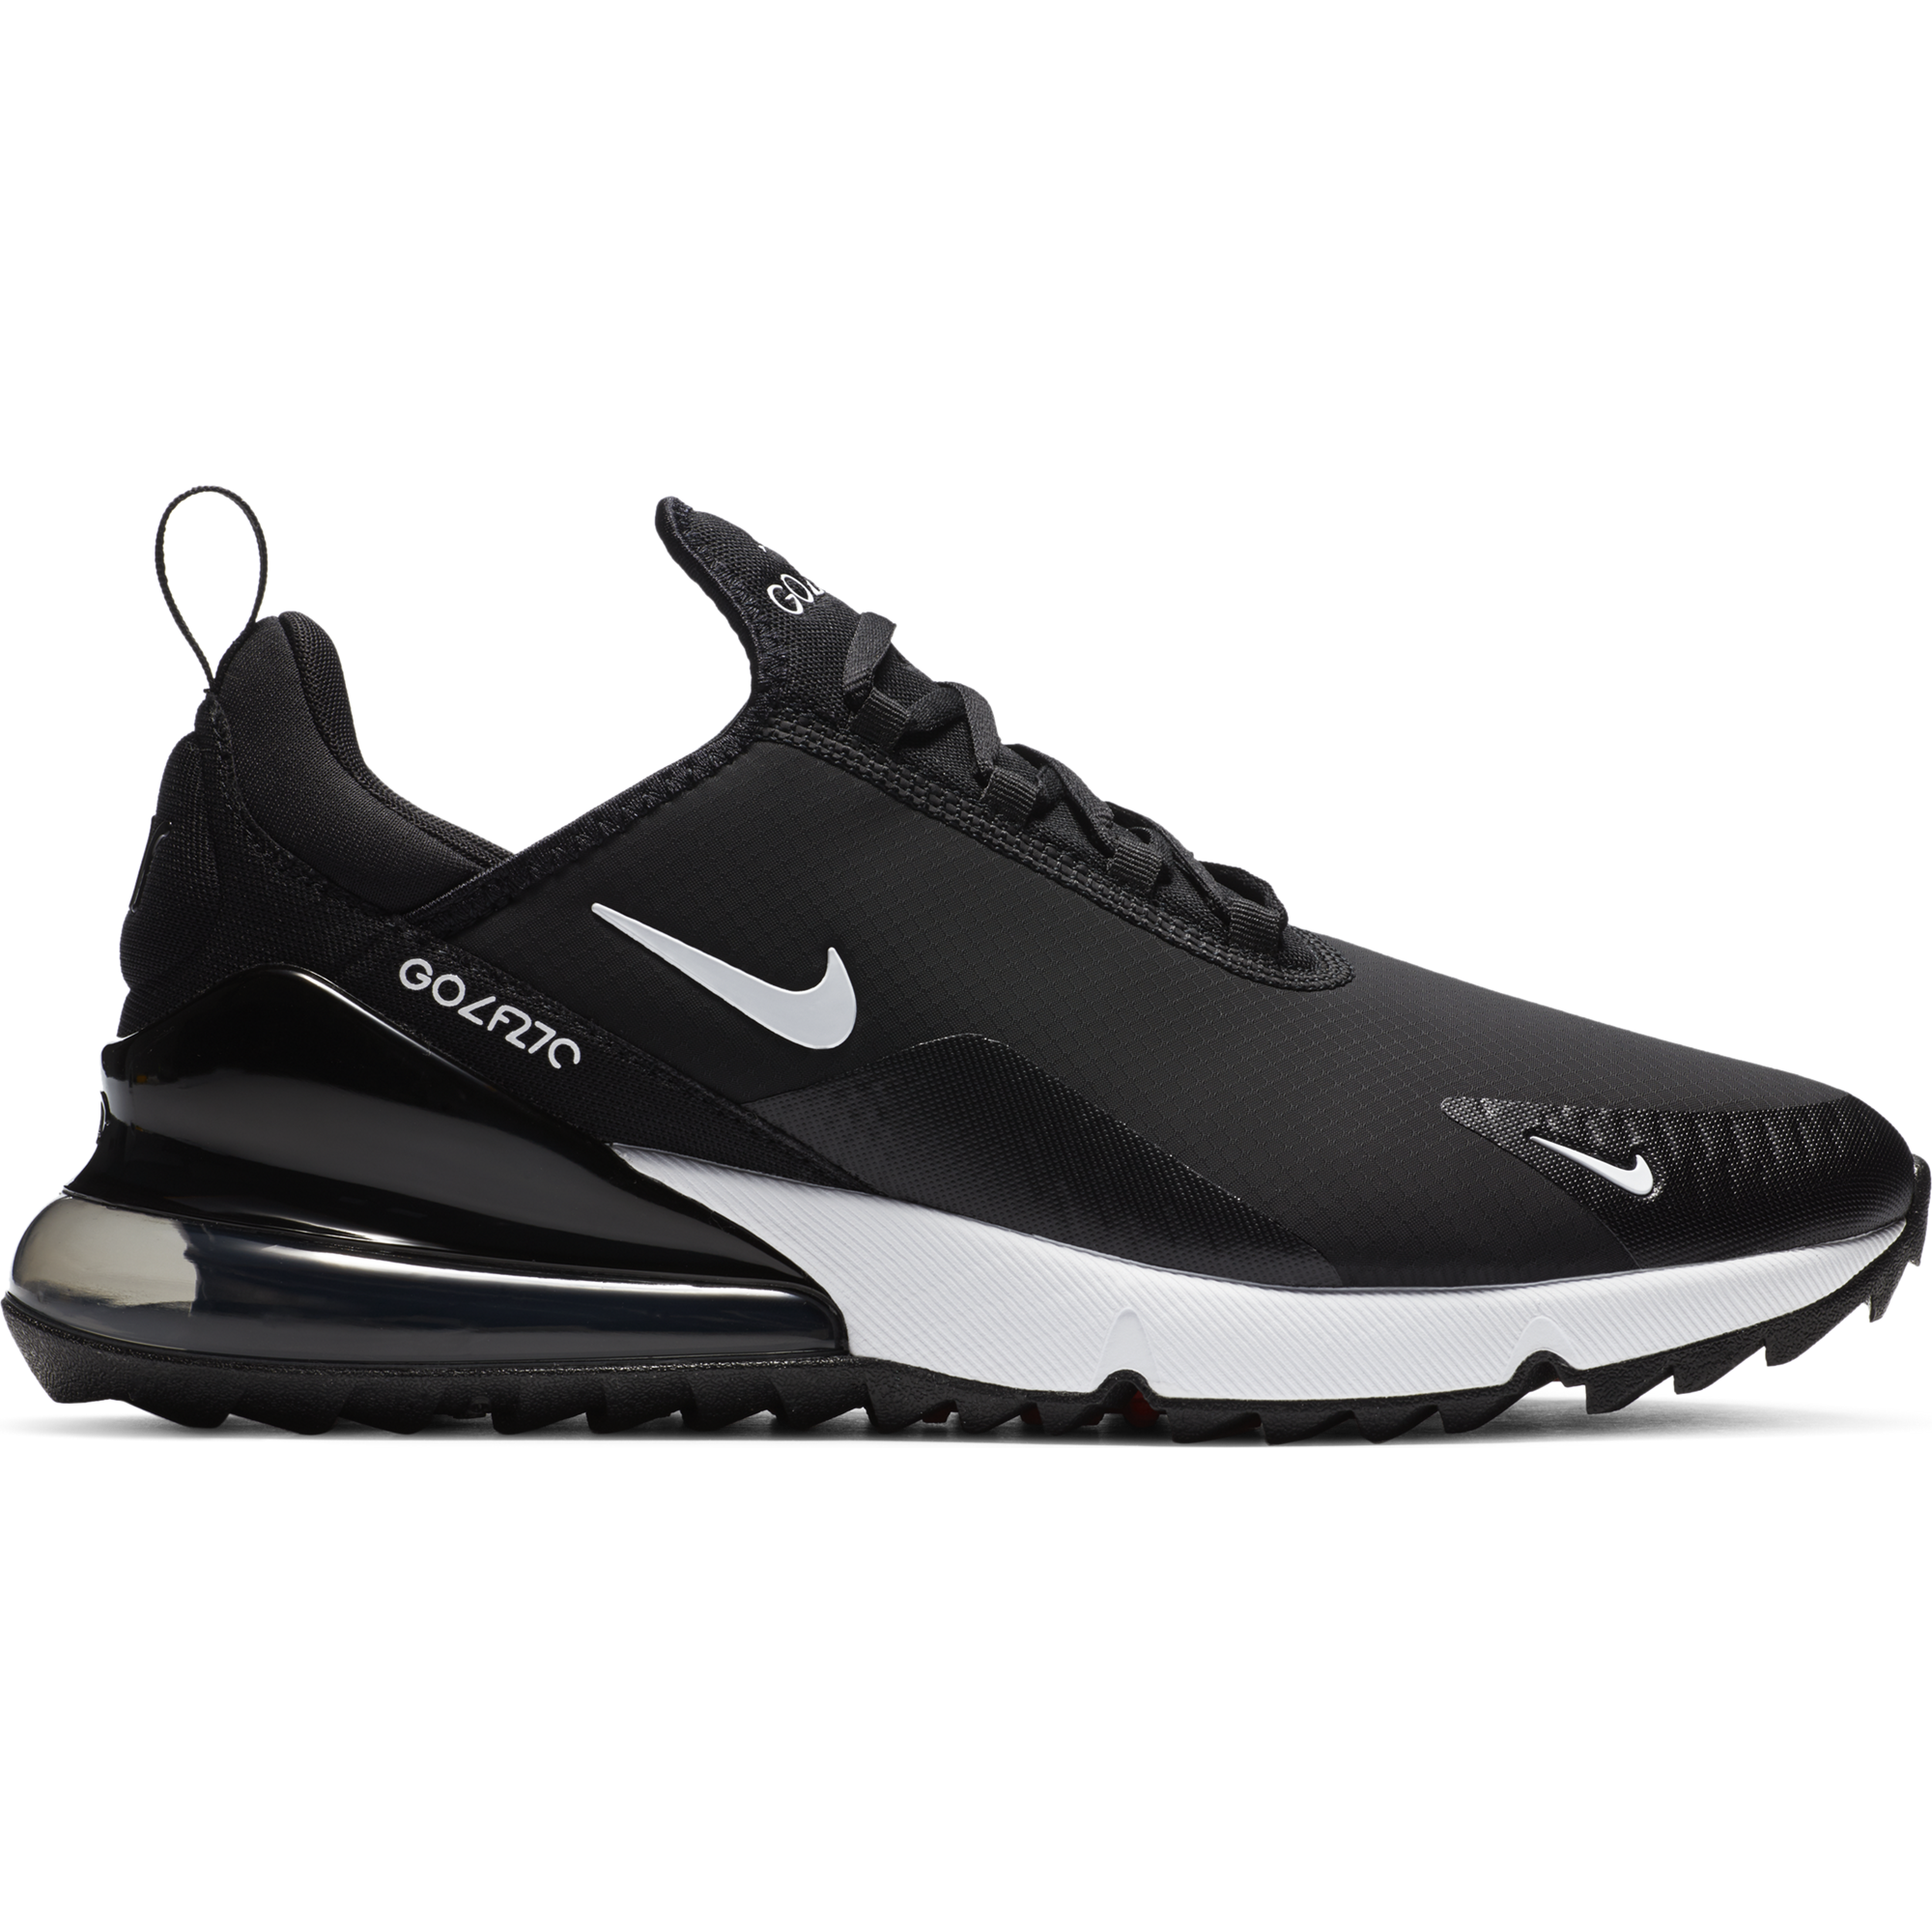 moral Correa maquinilla de afeitar  Nike Air Max 270 G Men's Golf Shoe | PGA TOUR Superstore